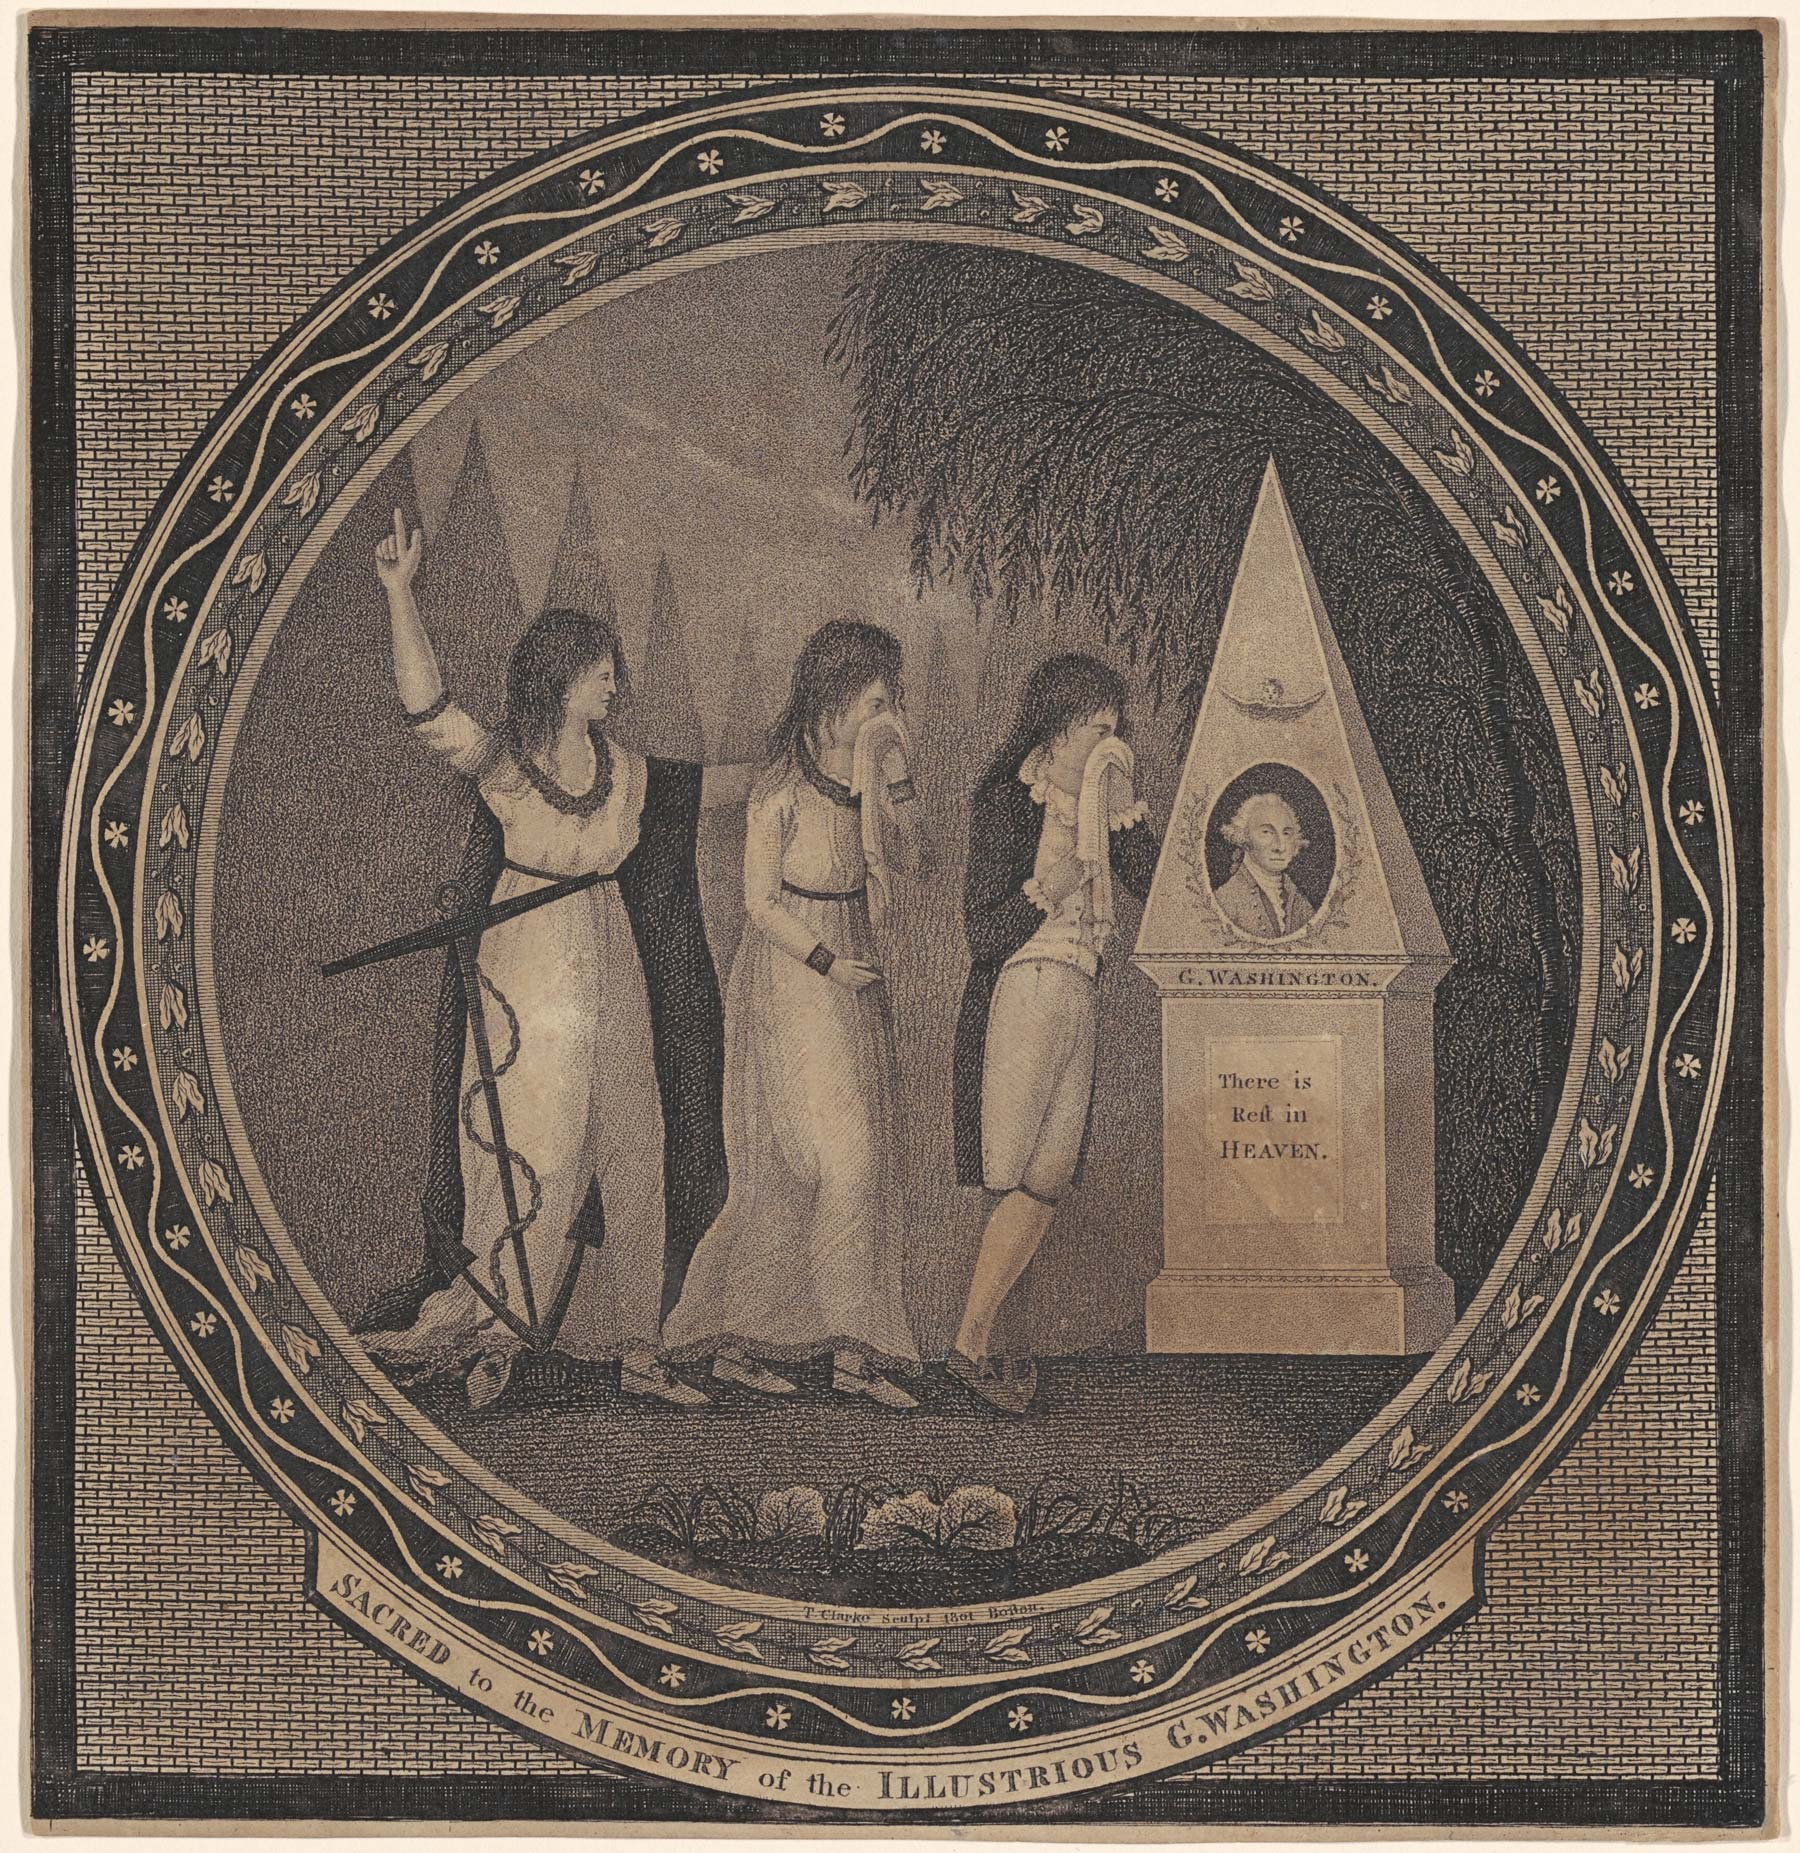 Thomas Clarke (American, active c. 1800), Sacred to the Memory of the Illustrious George Washington, 1801. Engraving in black on wove paper, 8 ⅜ × 8 in. (21.27 × 20.32 cm). National Gallery of Art, Corcoran Collection (museum purchase, Mary E. Maxwell Fund), 2015.19.1053.